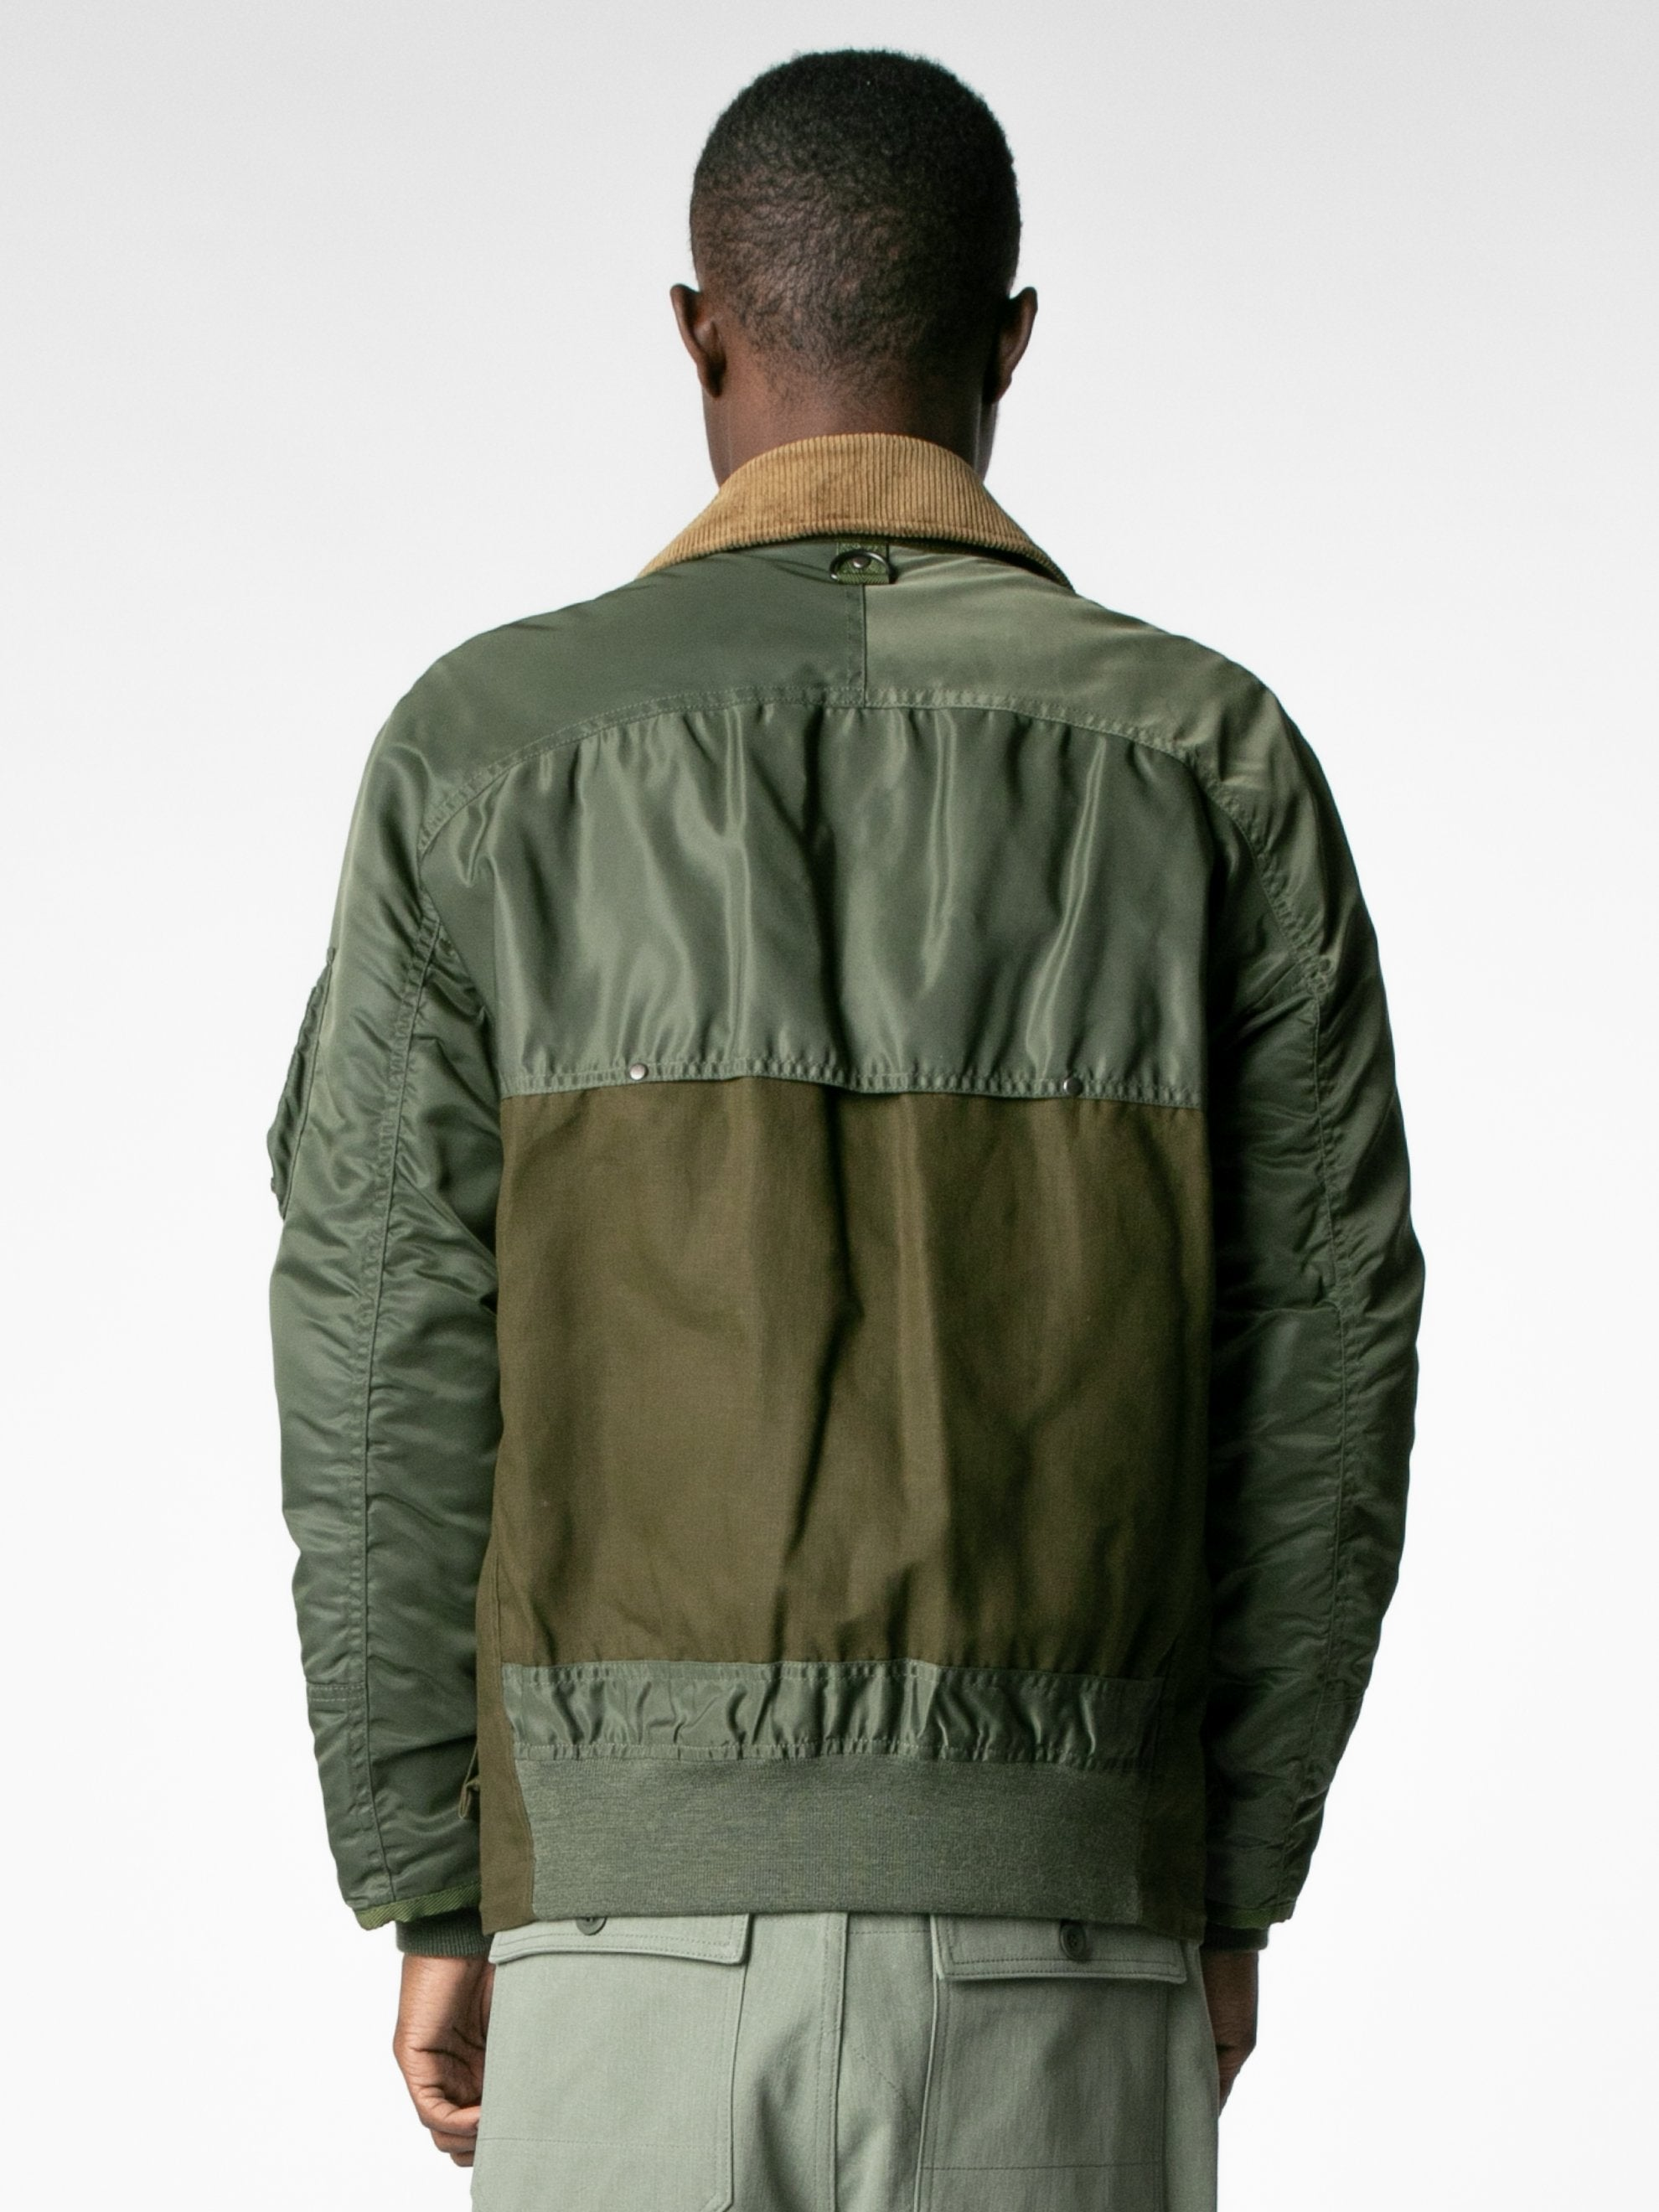 Brown / Olive Hybrid MA-1 Field Coat 6